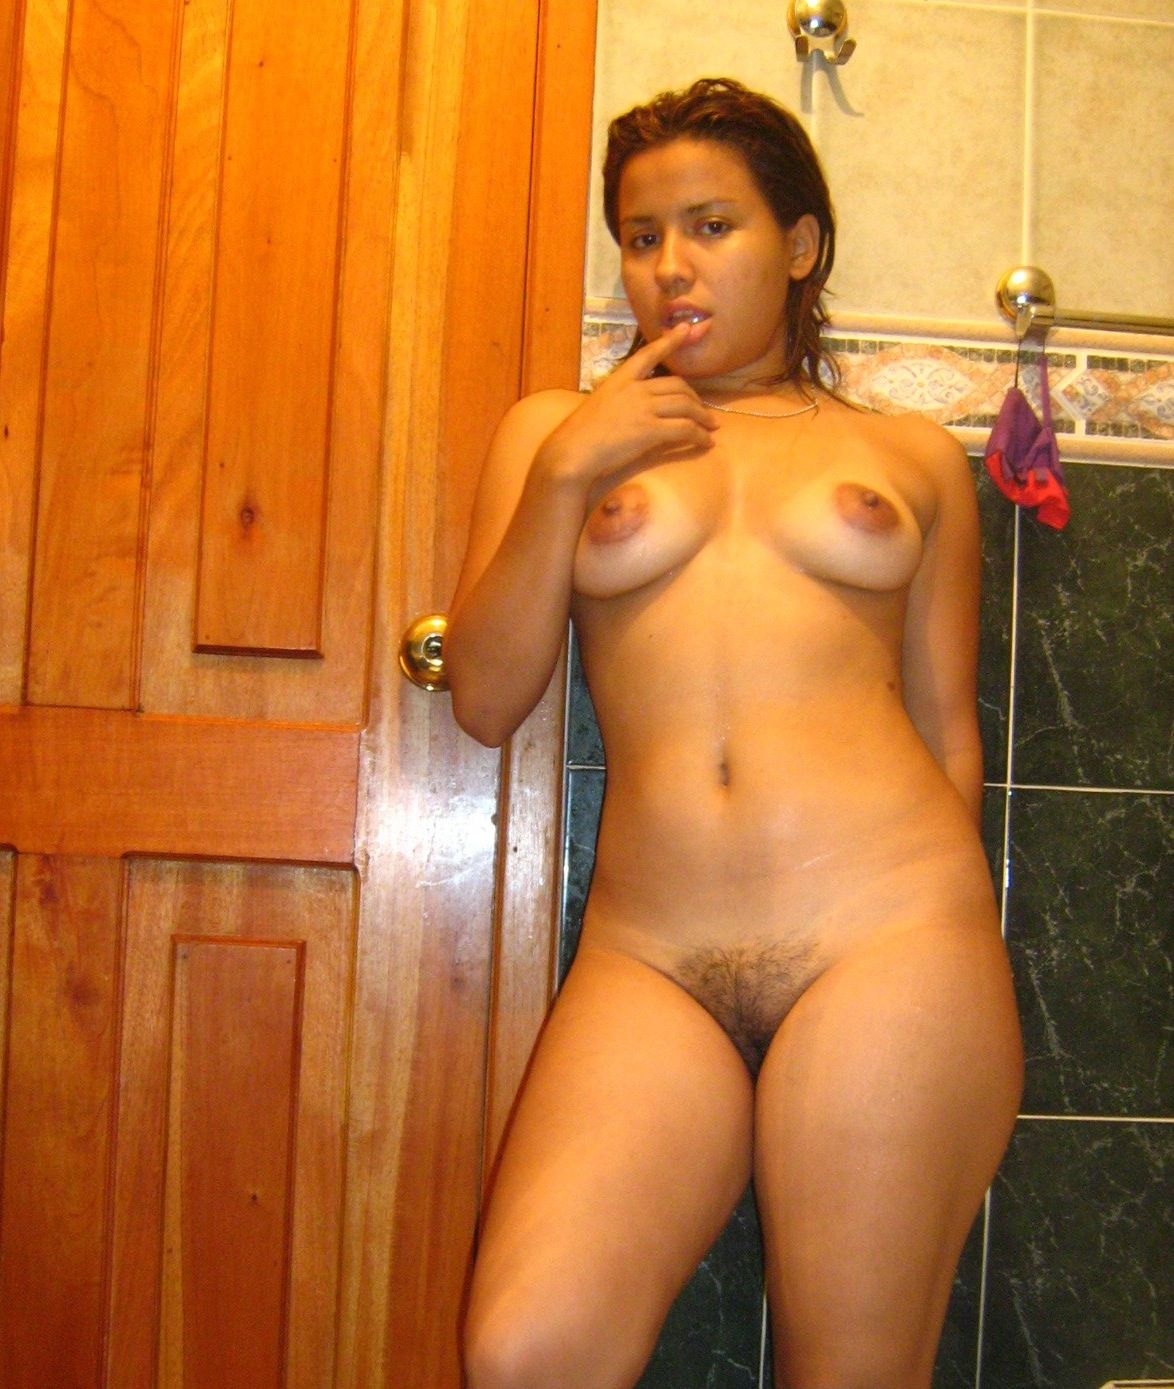 Teenager girl naked mexican